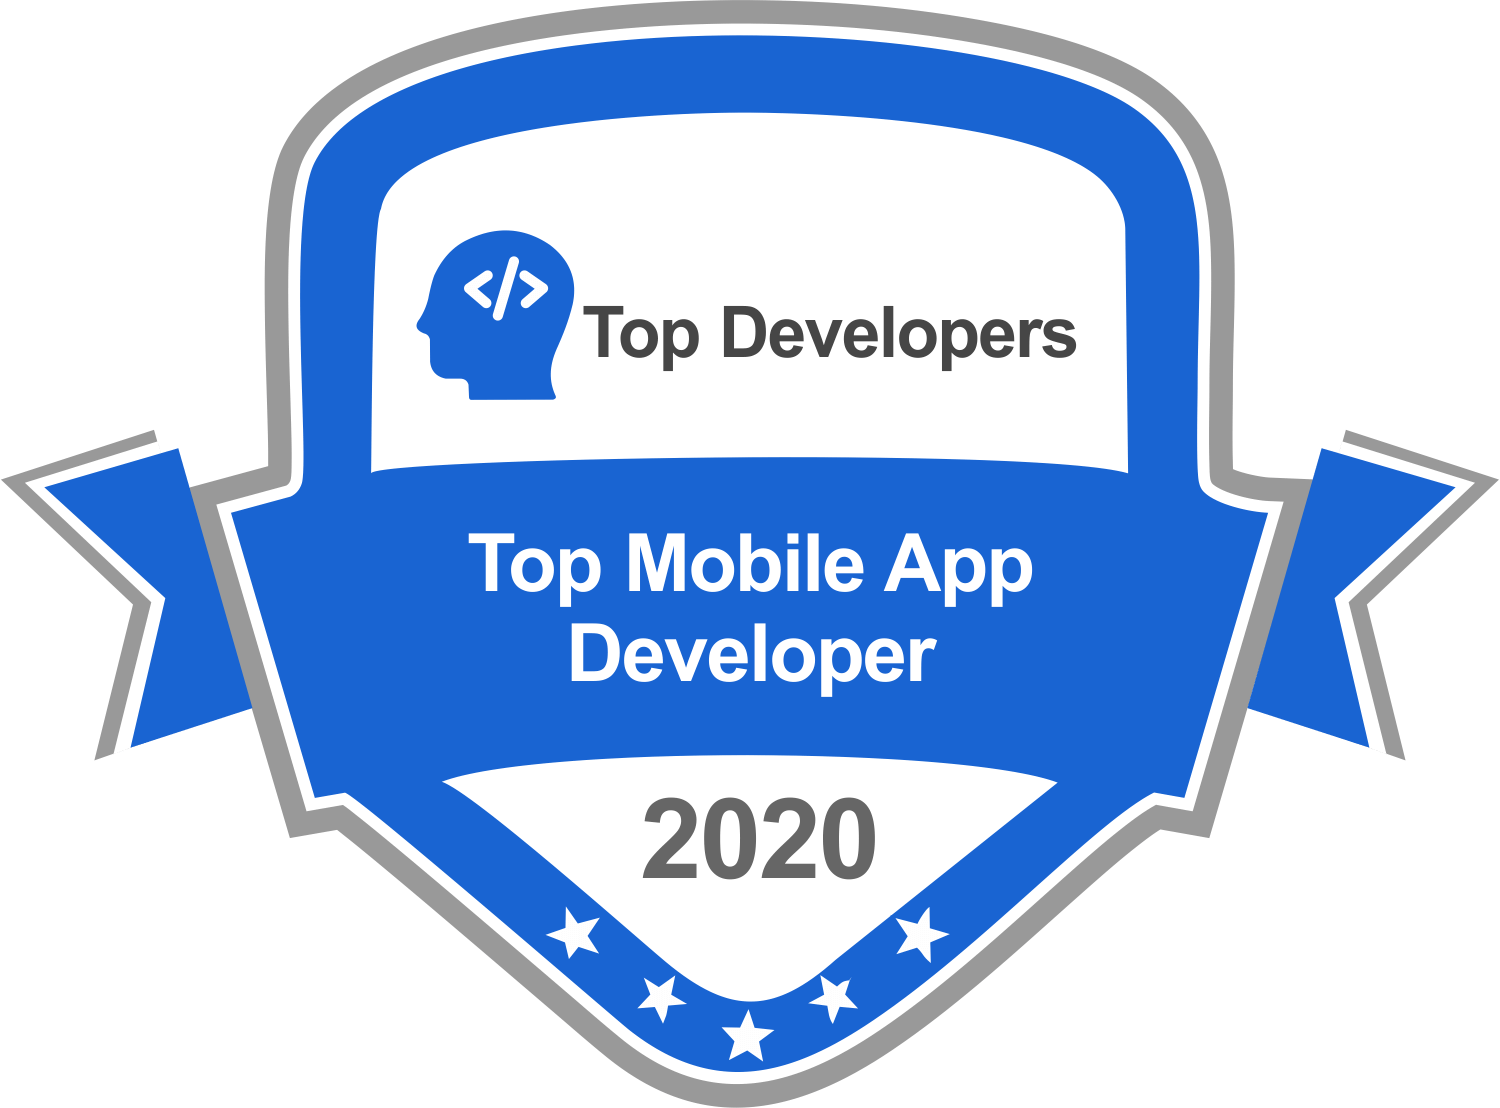 Top Mobile App Developers and Development Companies